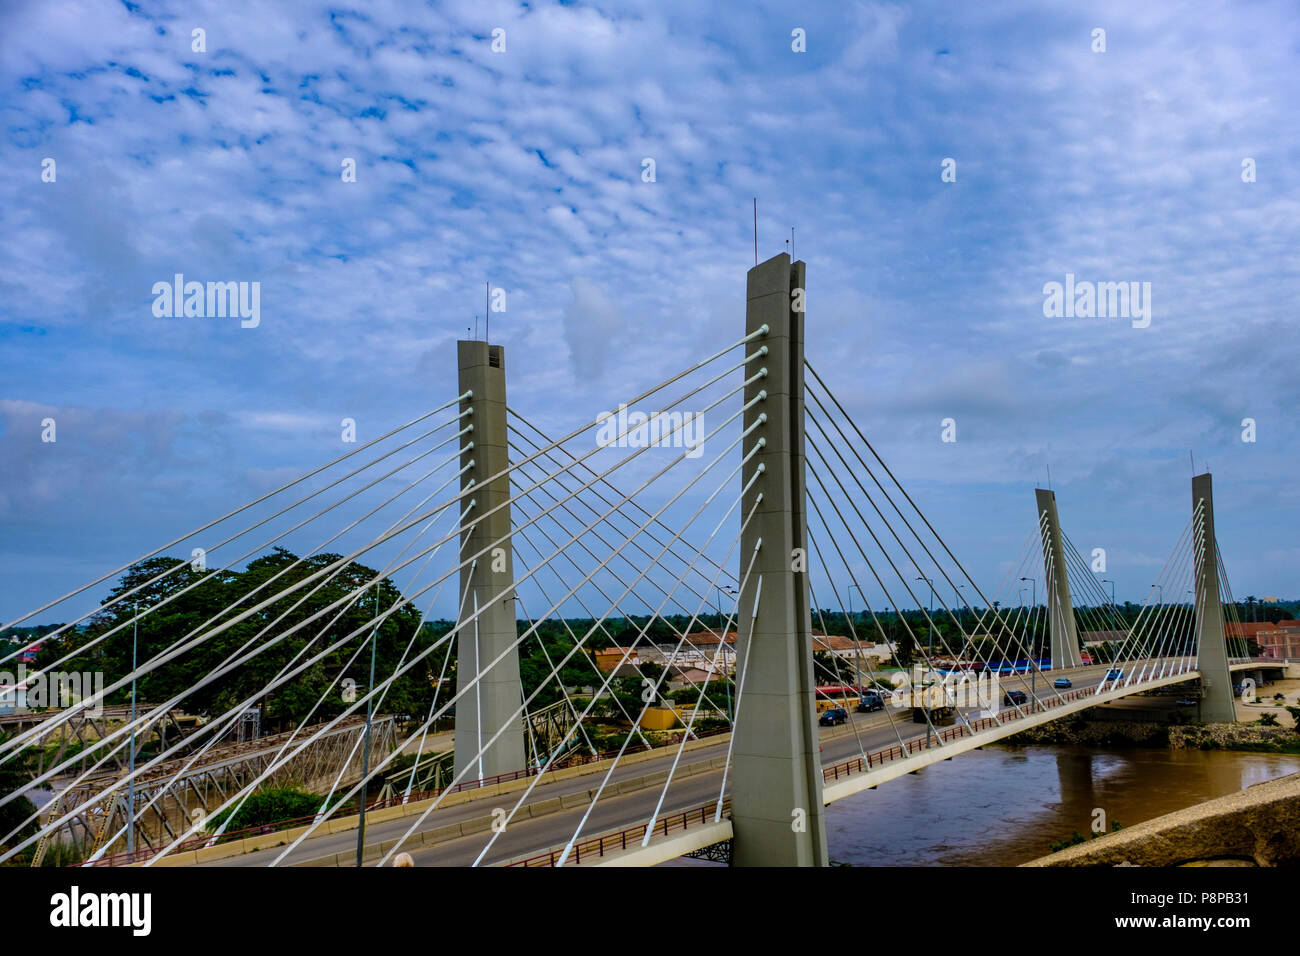 Traffic crosses modern suspension Bridge, 4 April, over Catumbela River linking cities of Benguela and Lobito in Angola with old bridge also visible - Stock Image